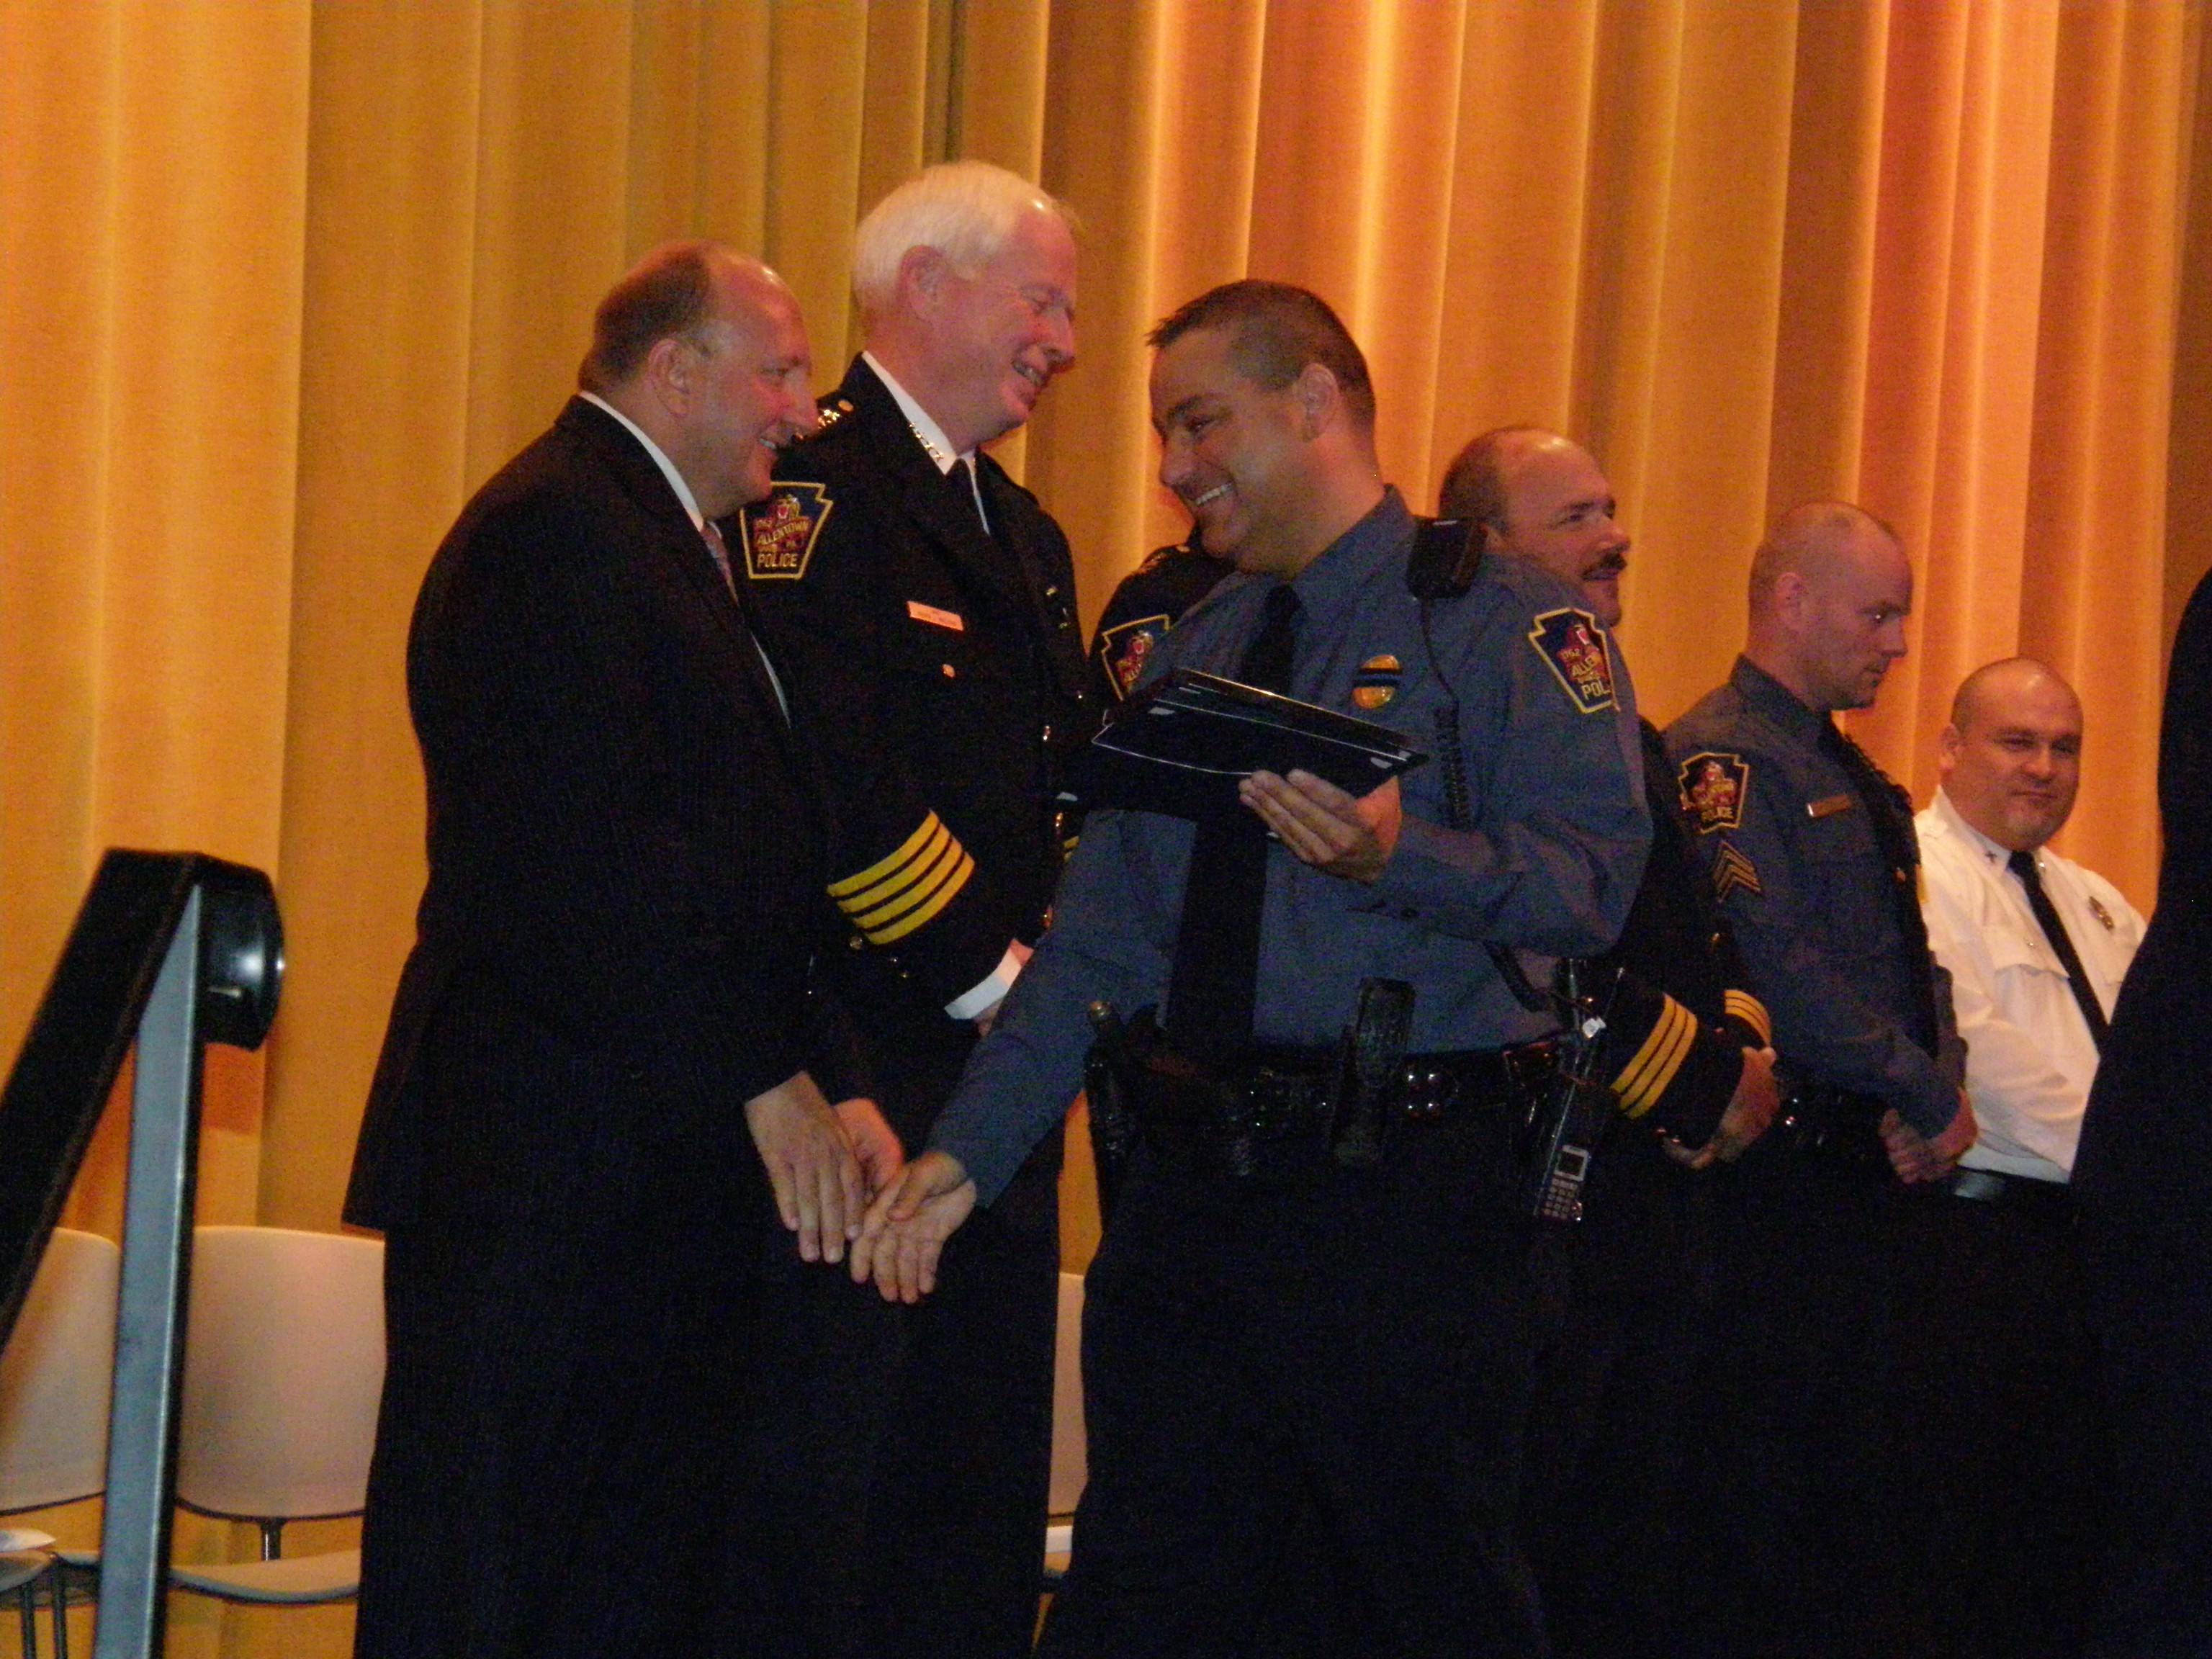 APD Commendations Awarded